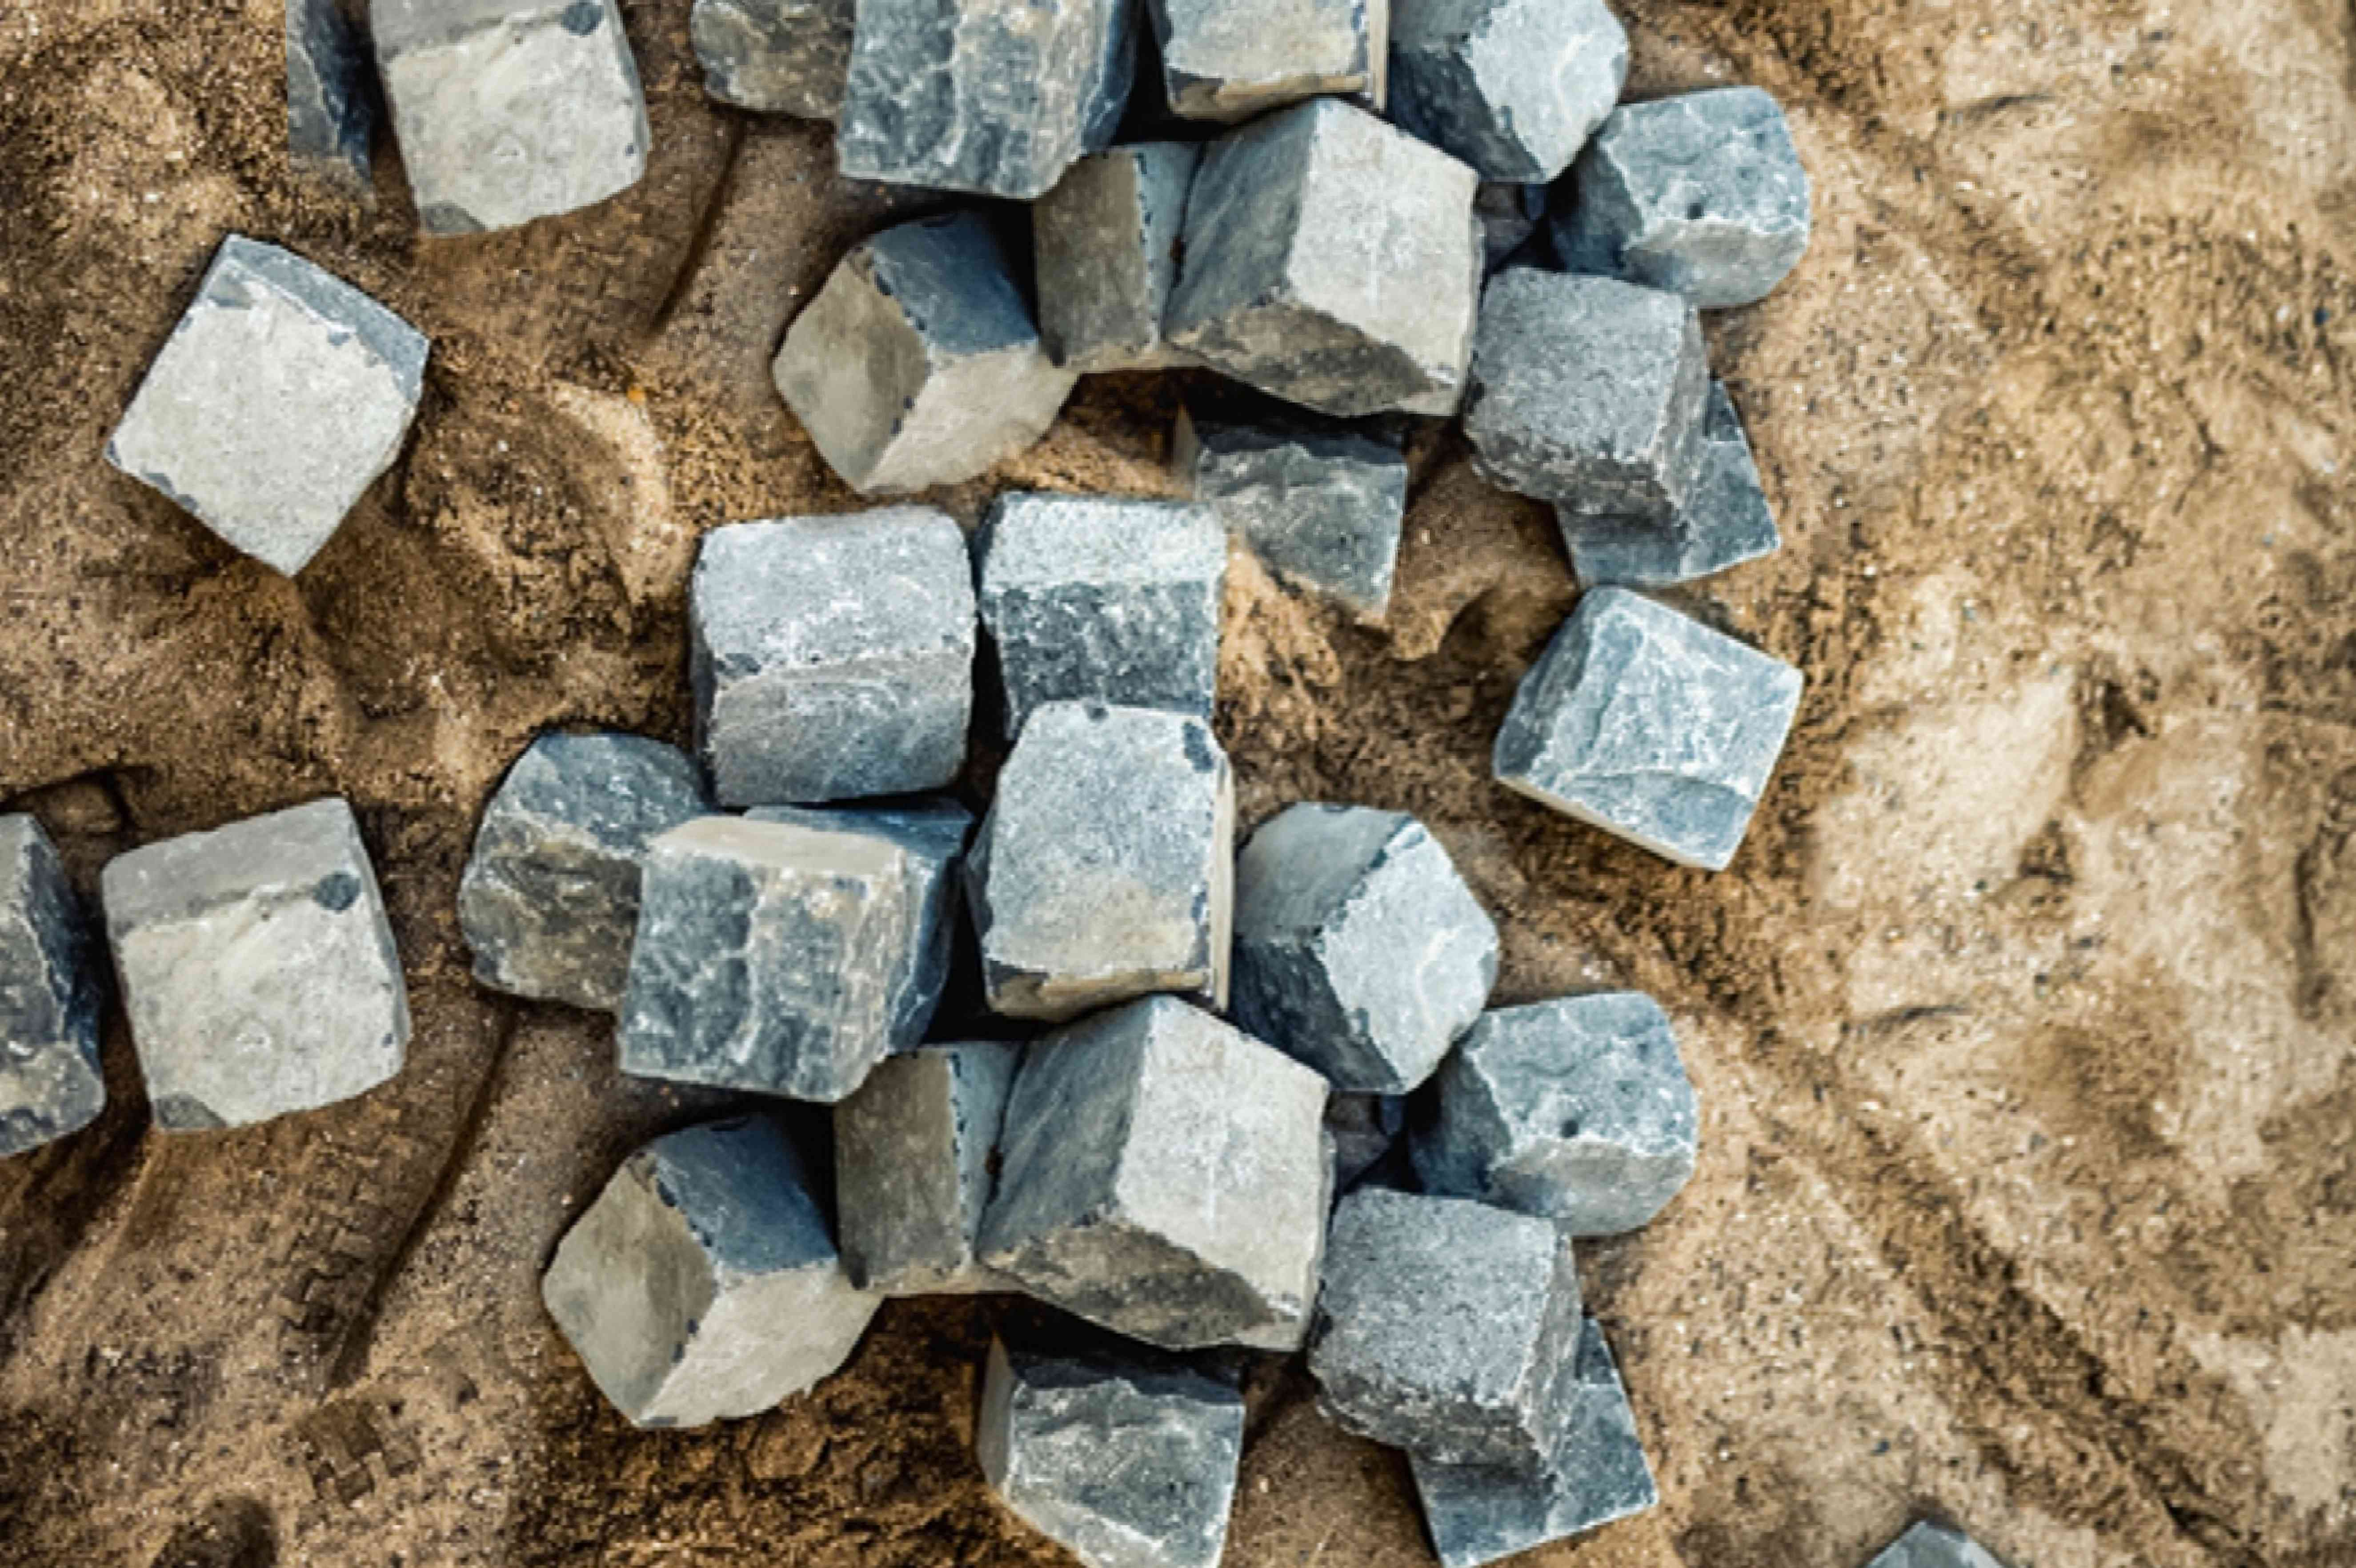 rocks at a construction site